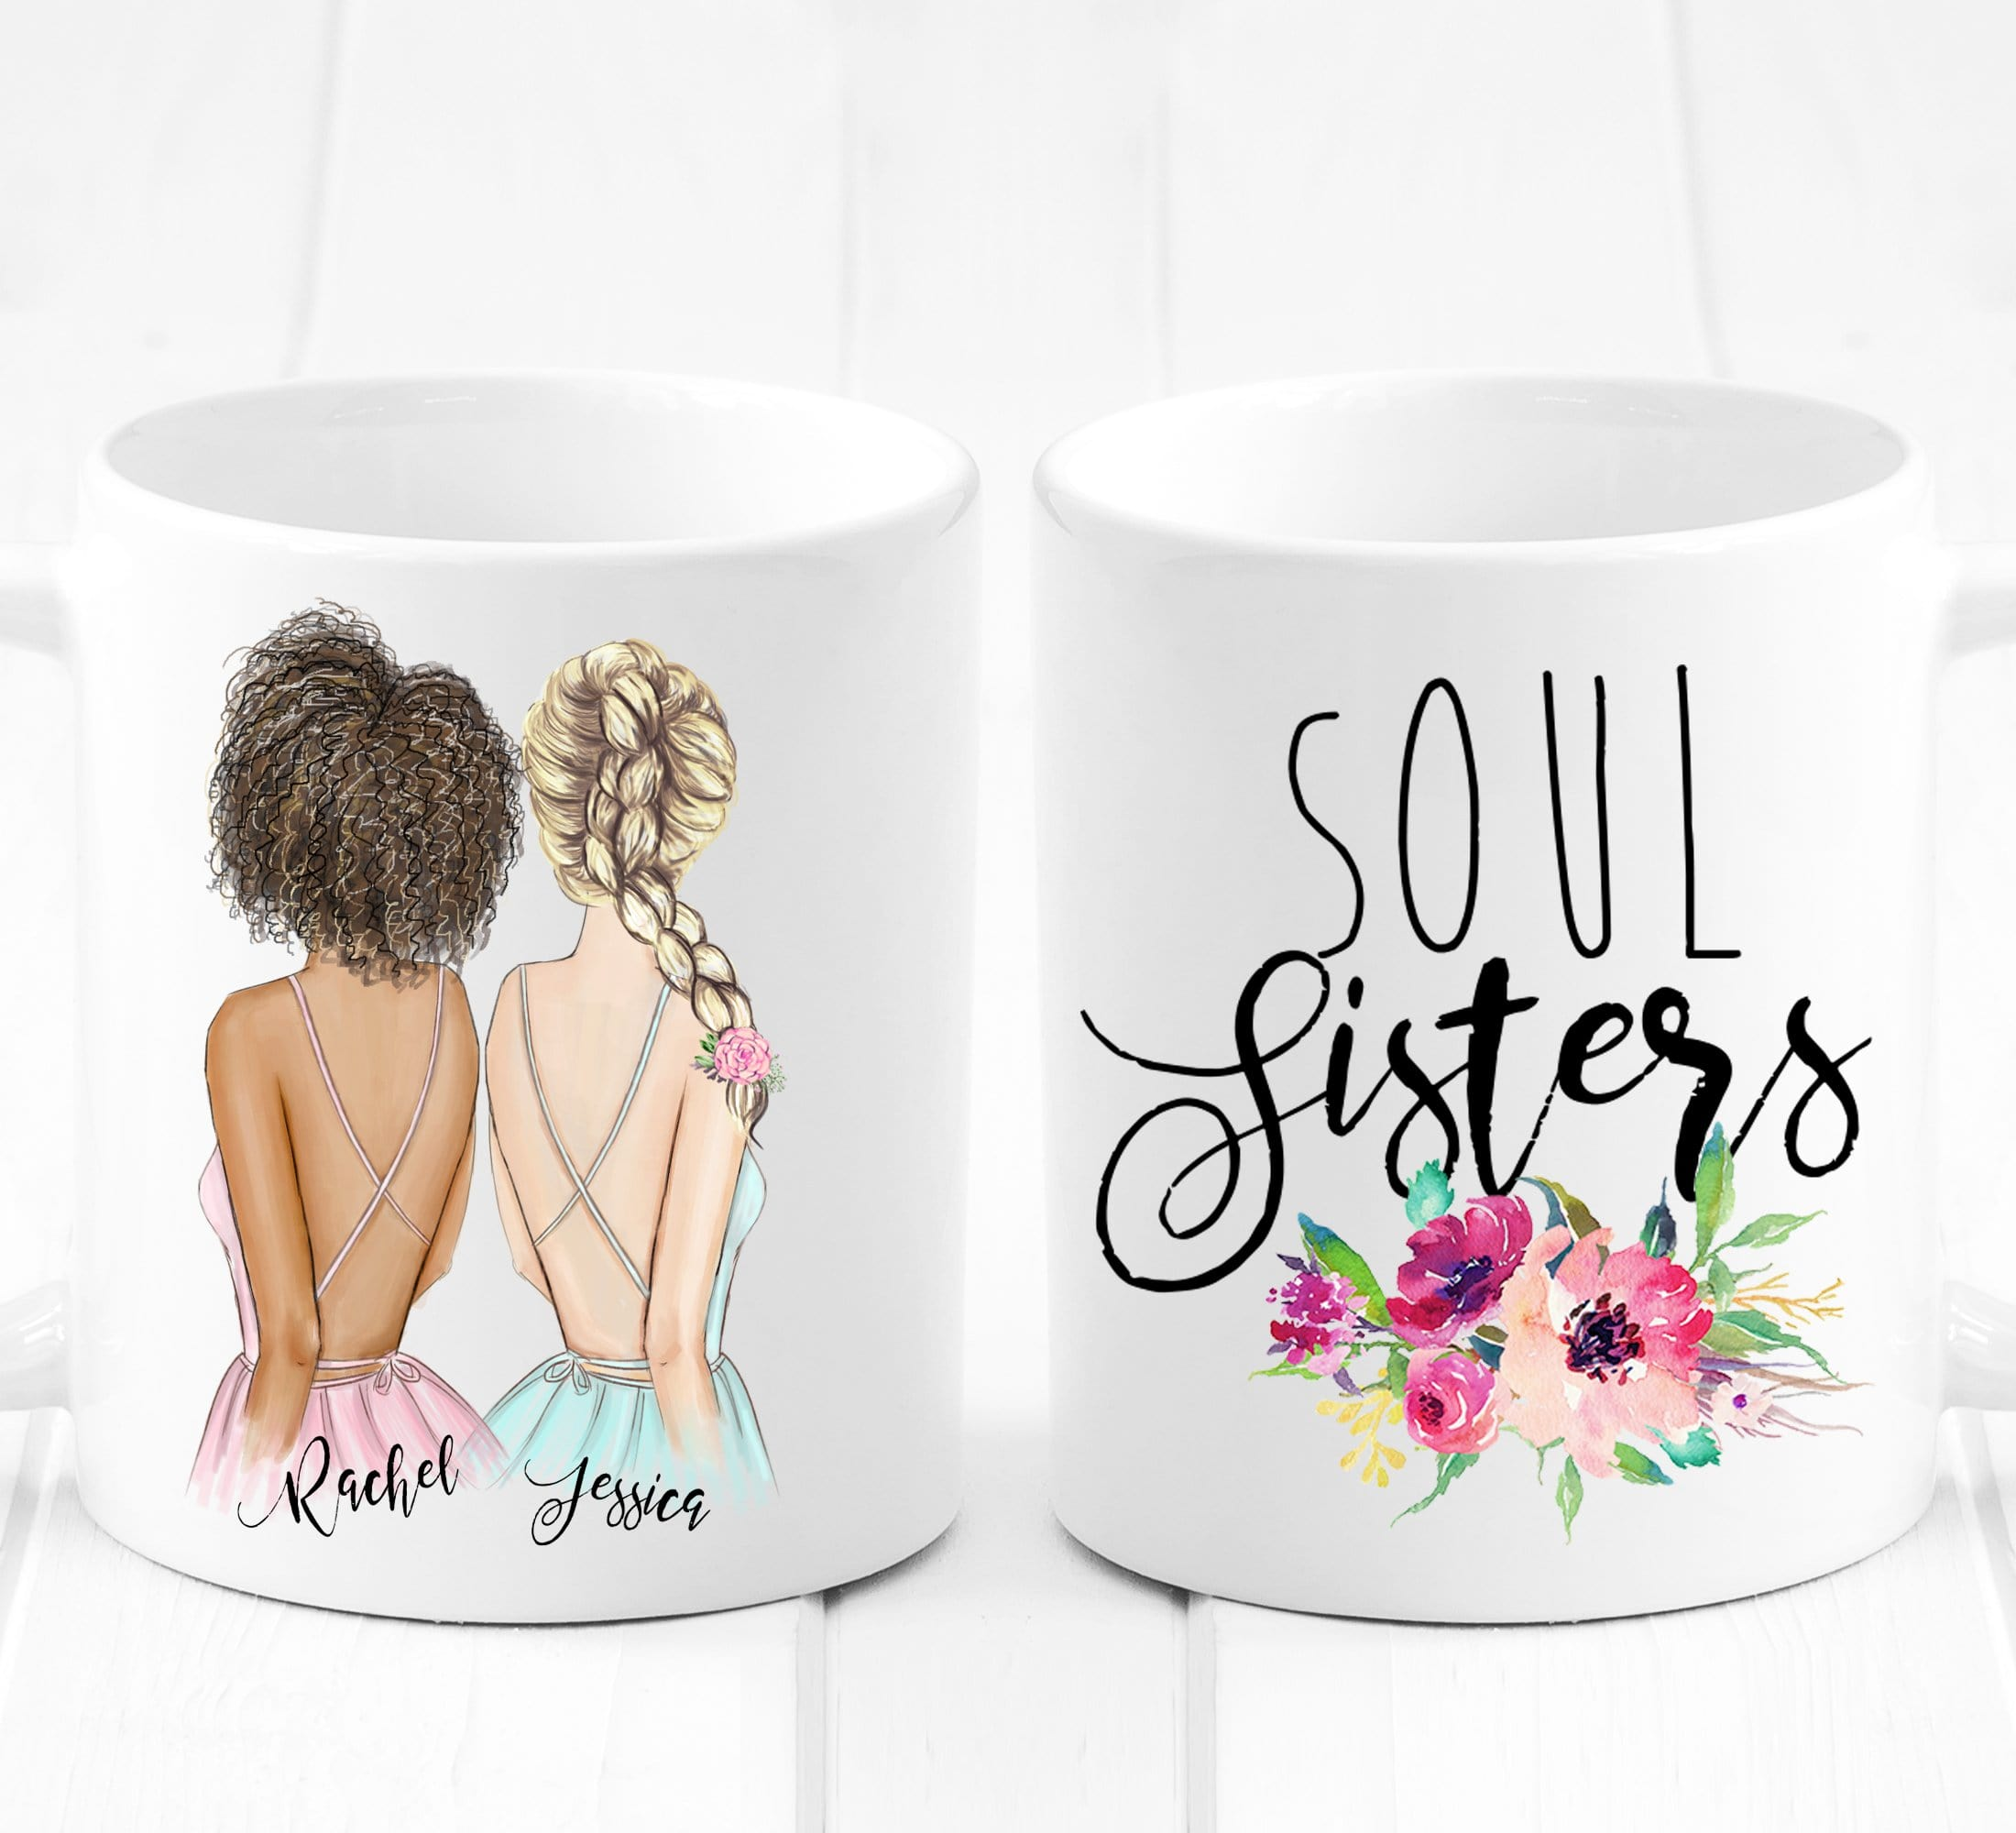 Christmas Present Ideas For Best Friends Girl.Best Friend Gift Soul Sisters Unique Friendship Gift On Mug By Glacelis